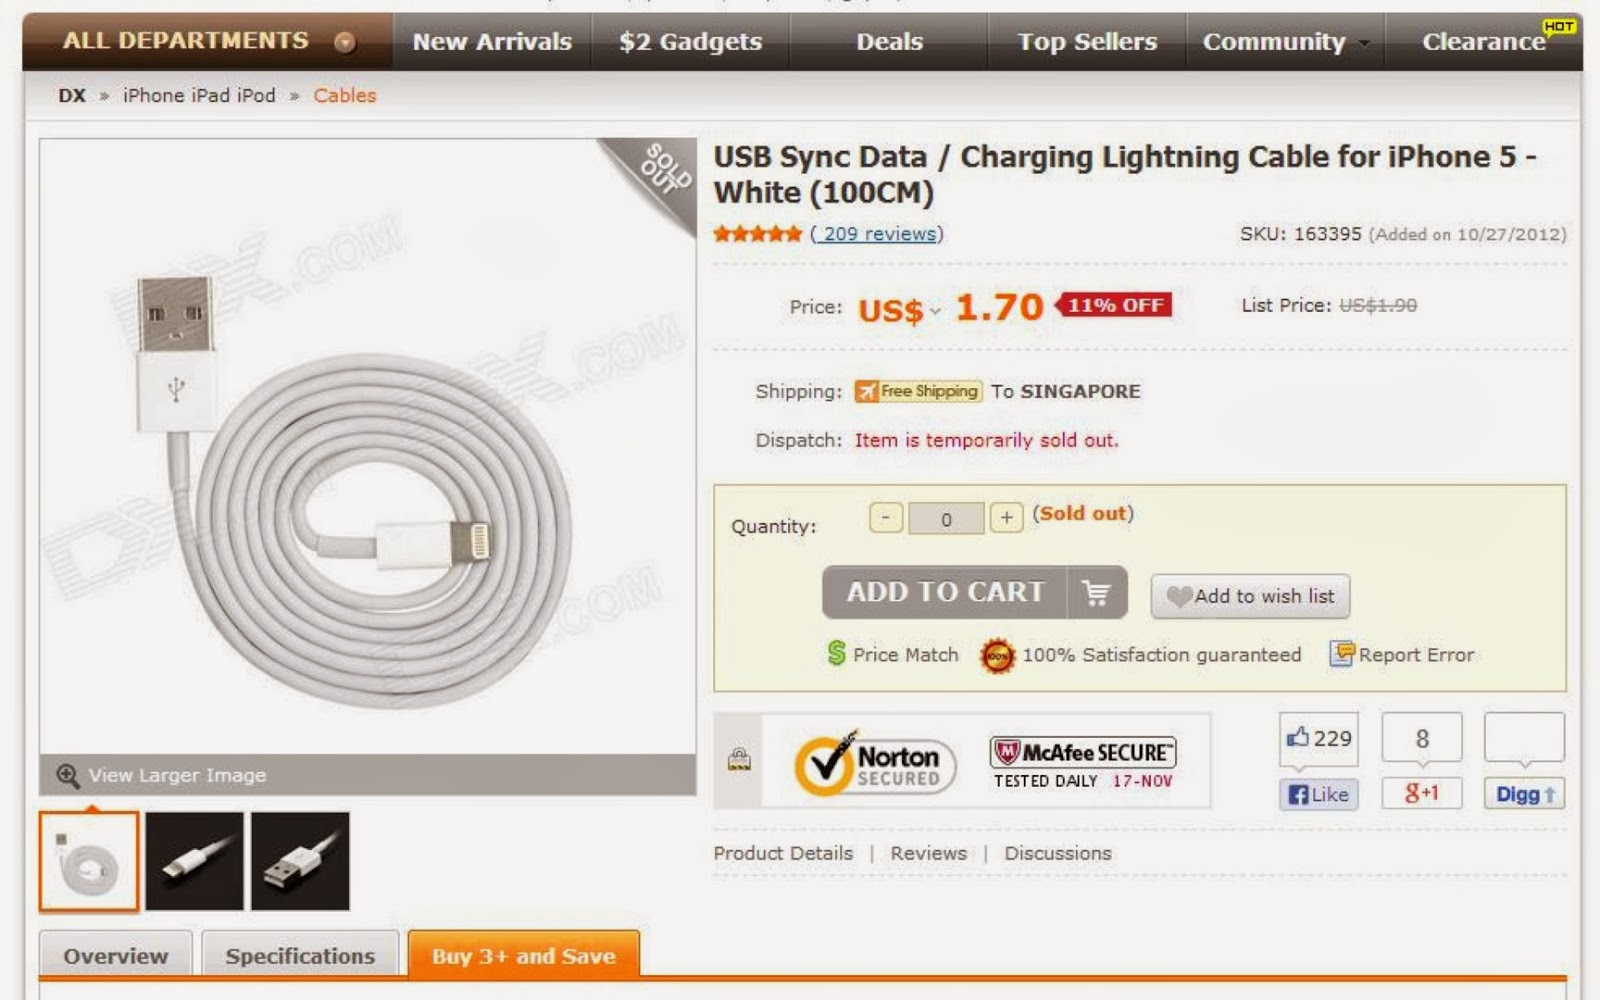 Iphone 5 Charger Cable Wiring Diagram Contemporary Ipod Collection 012biphone2b52bcharging2bcable